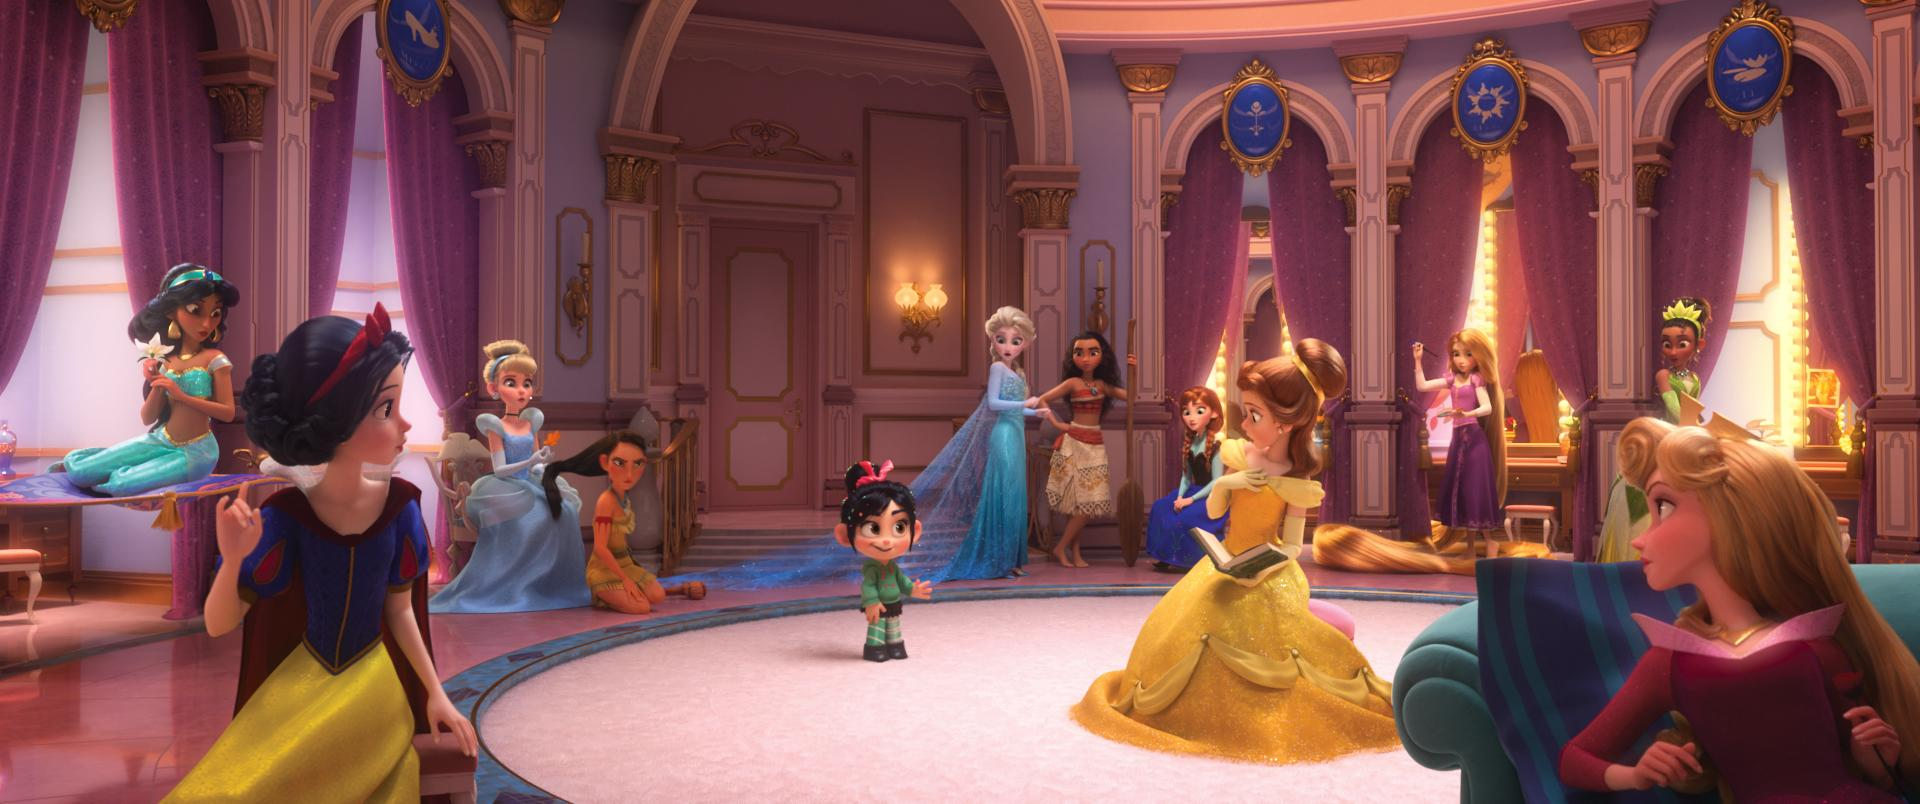 Sarah Silverman Ralph Breaks The Internet Flips The Script On Princess Ideal